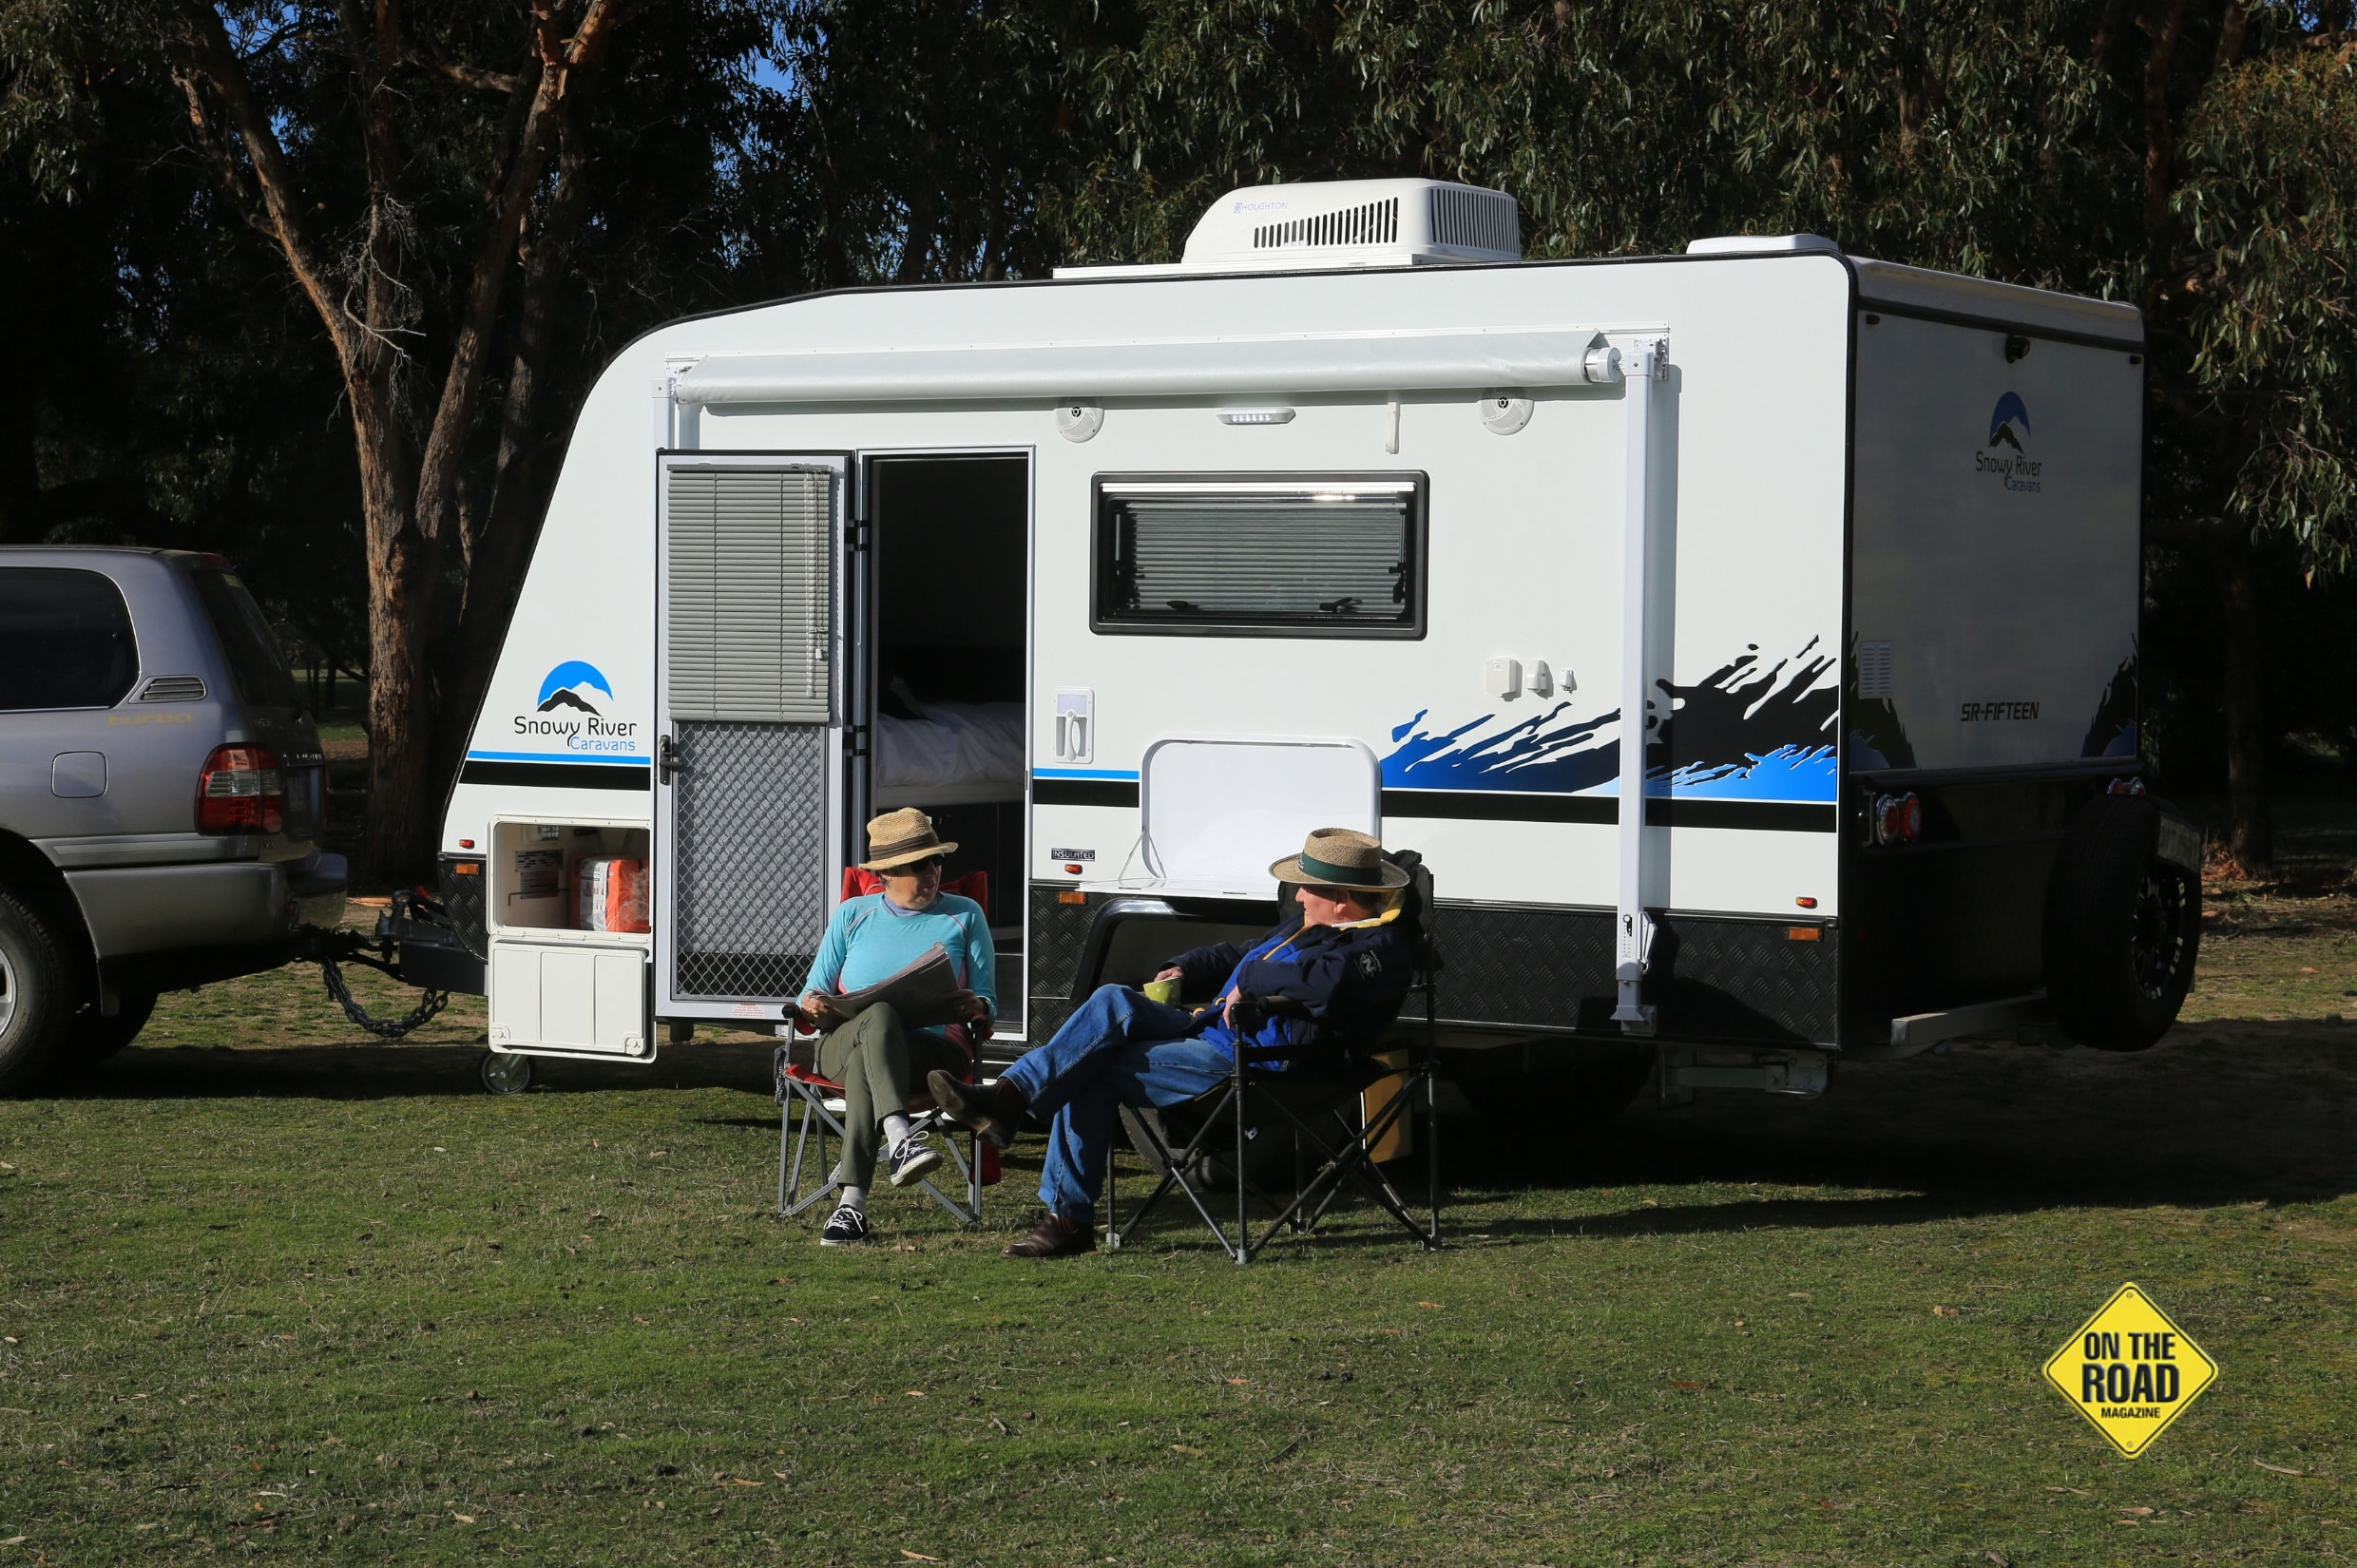 Couples camping with Snowy River